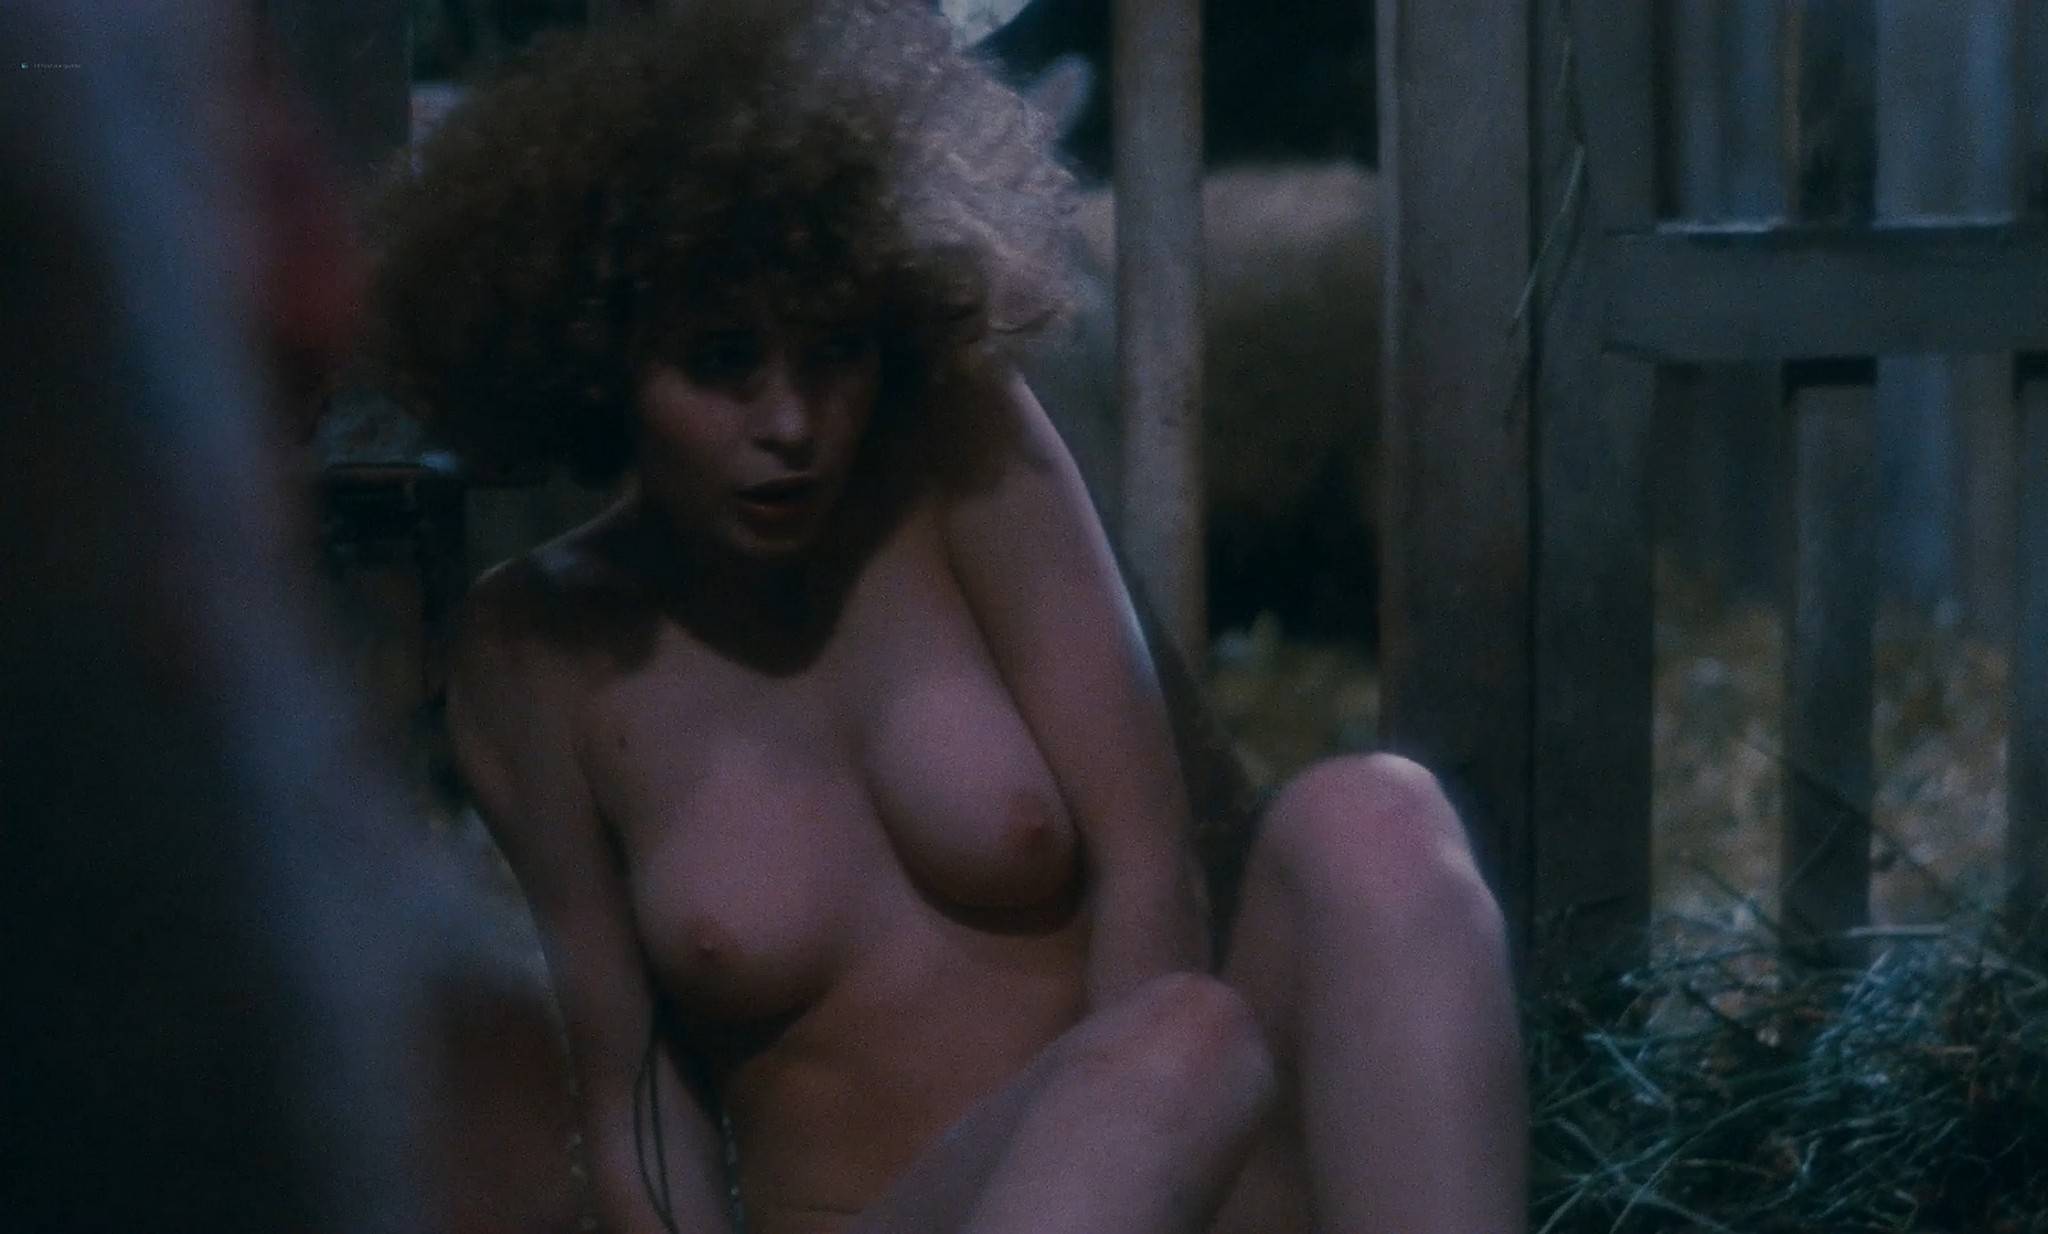 Marina Pierro nude sex Gaelle Legrand and Pascale Christophe nude bush and sex Les heroines du mal 1979 1080p BluRay REMUX 17